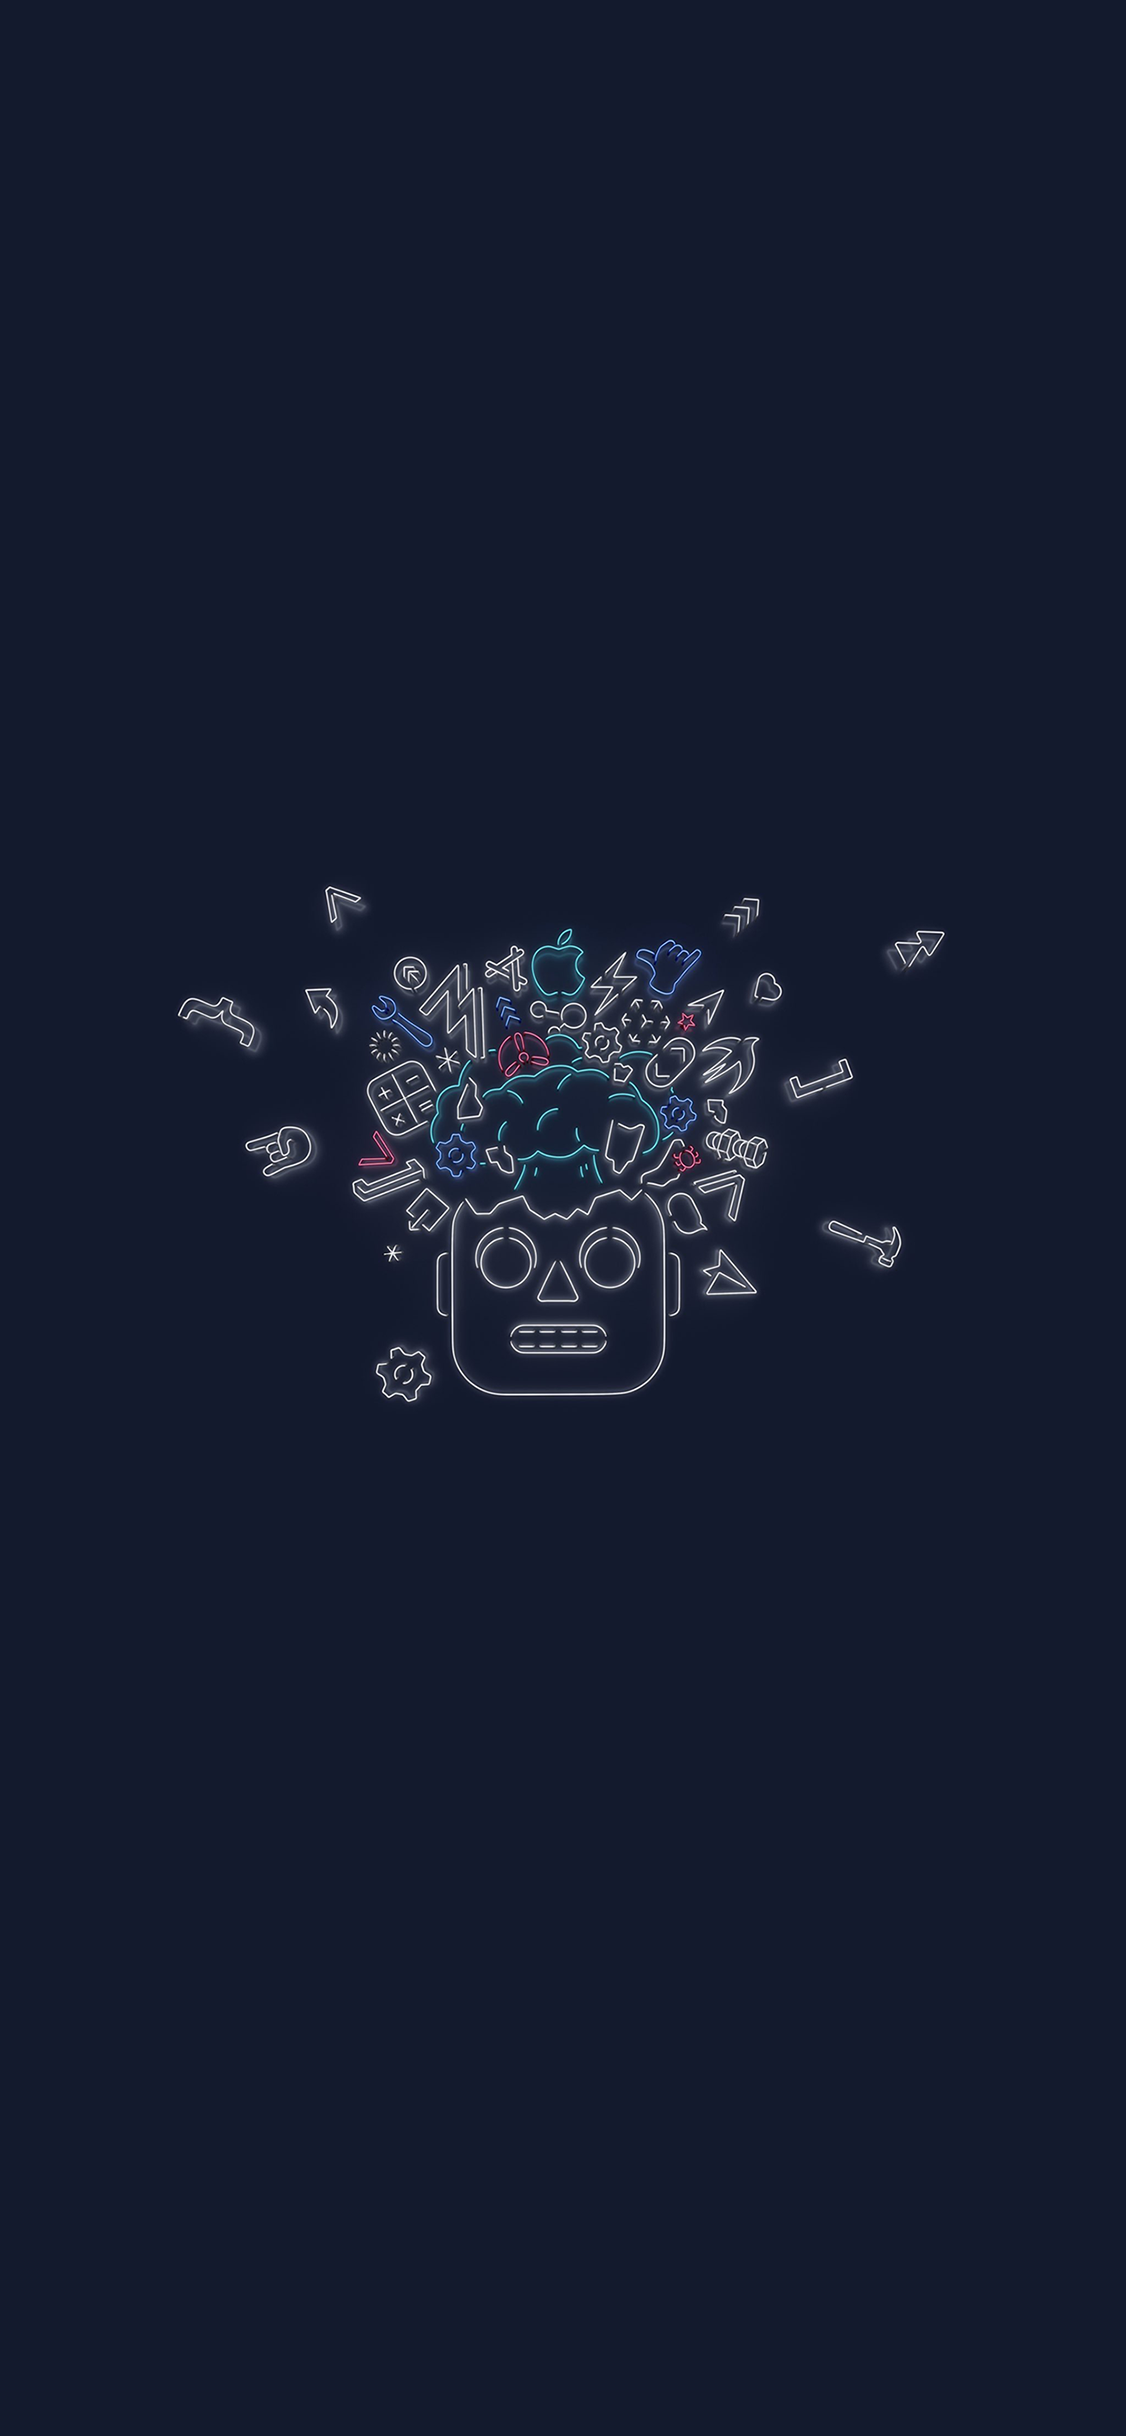 wwdc 19 wallpaper for iphone x and